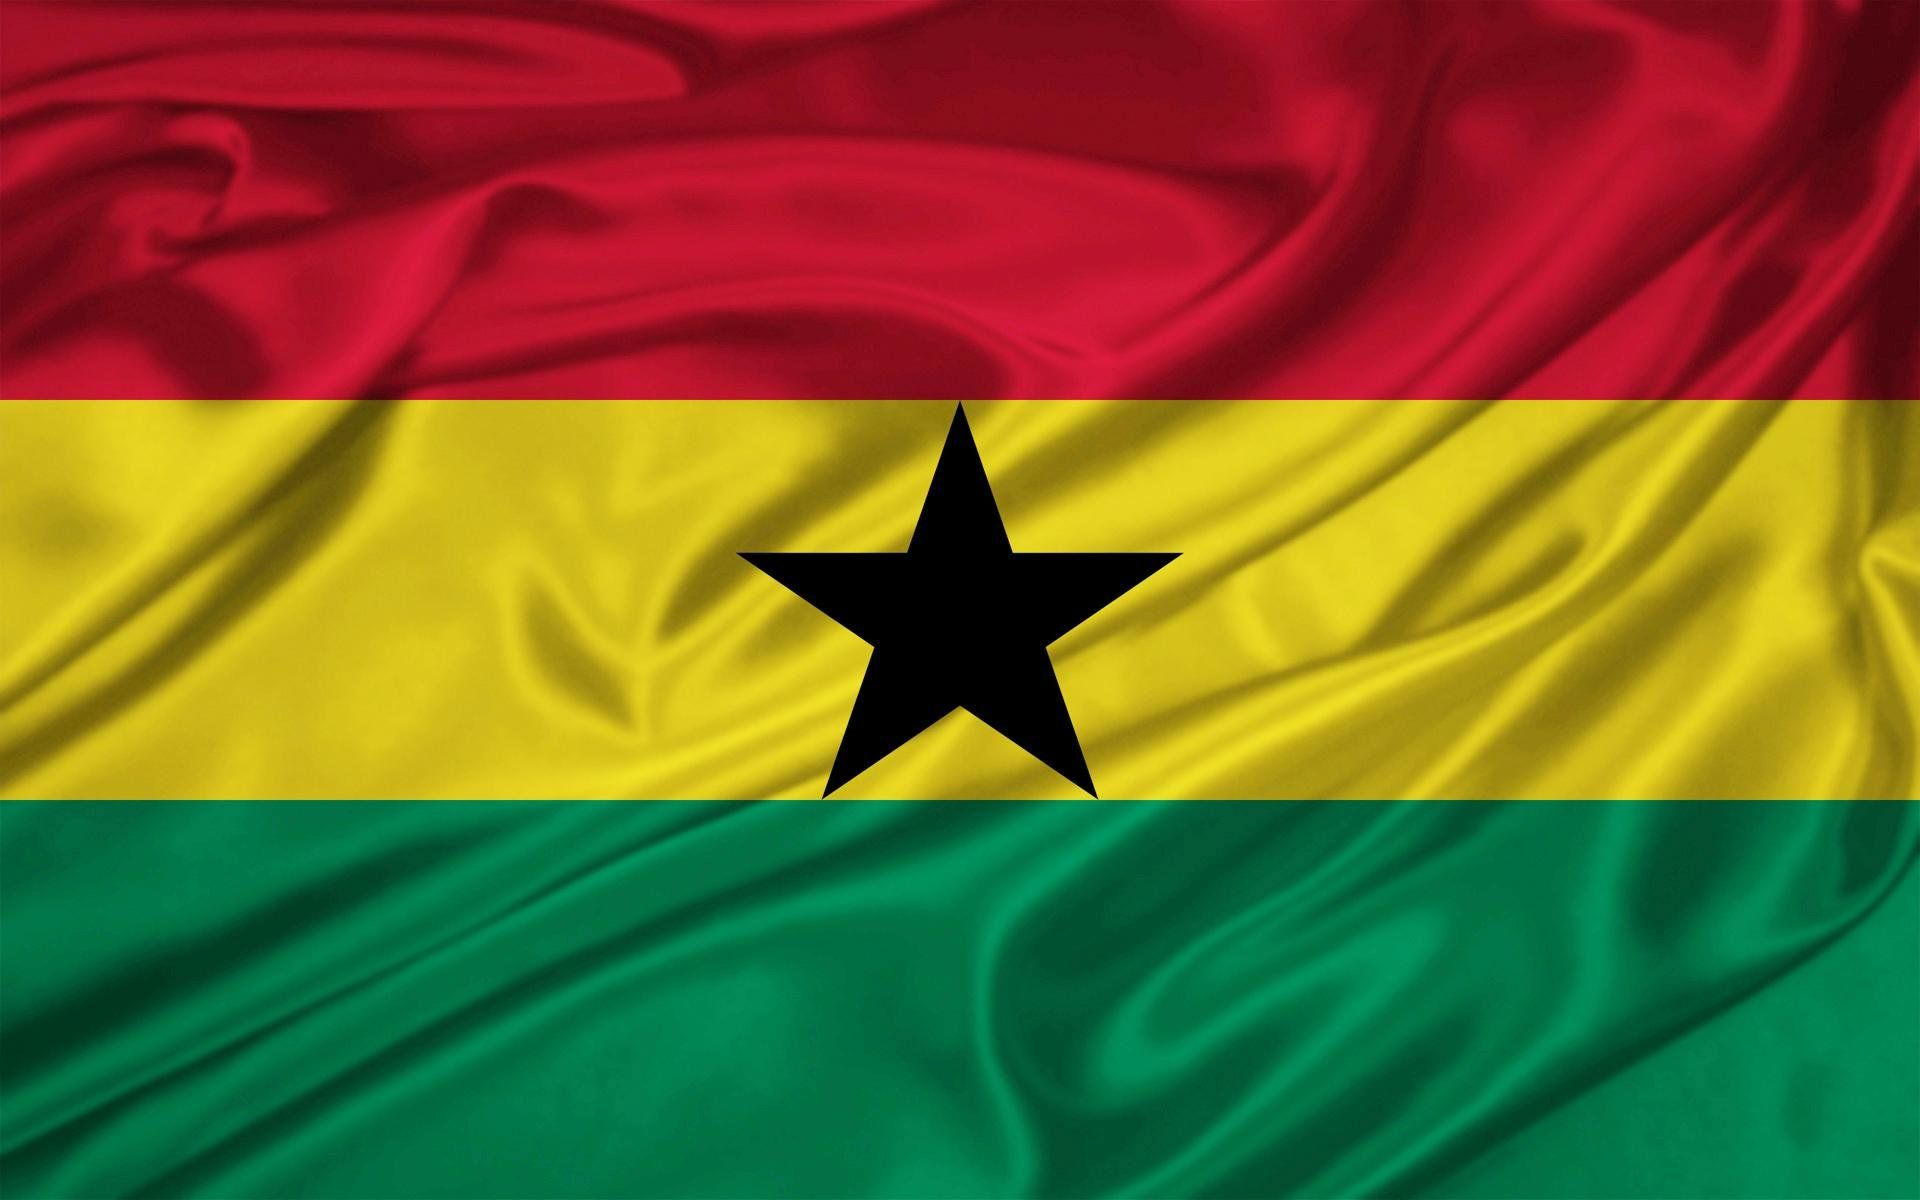 Ghana Flag Wallpapers Android Apps on Google Play